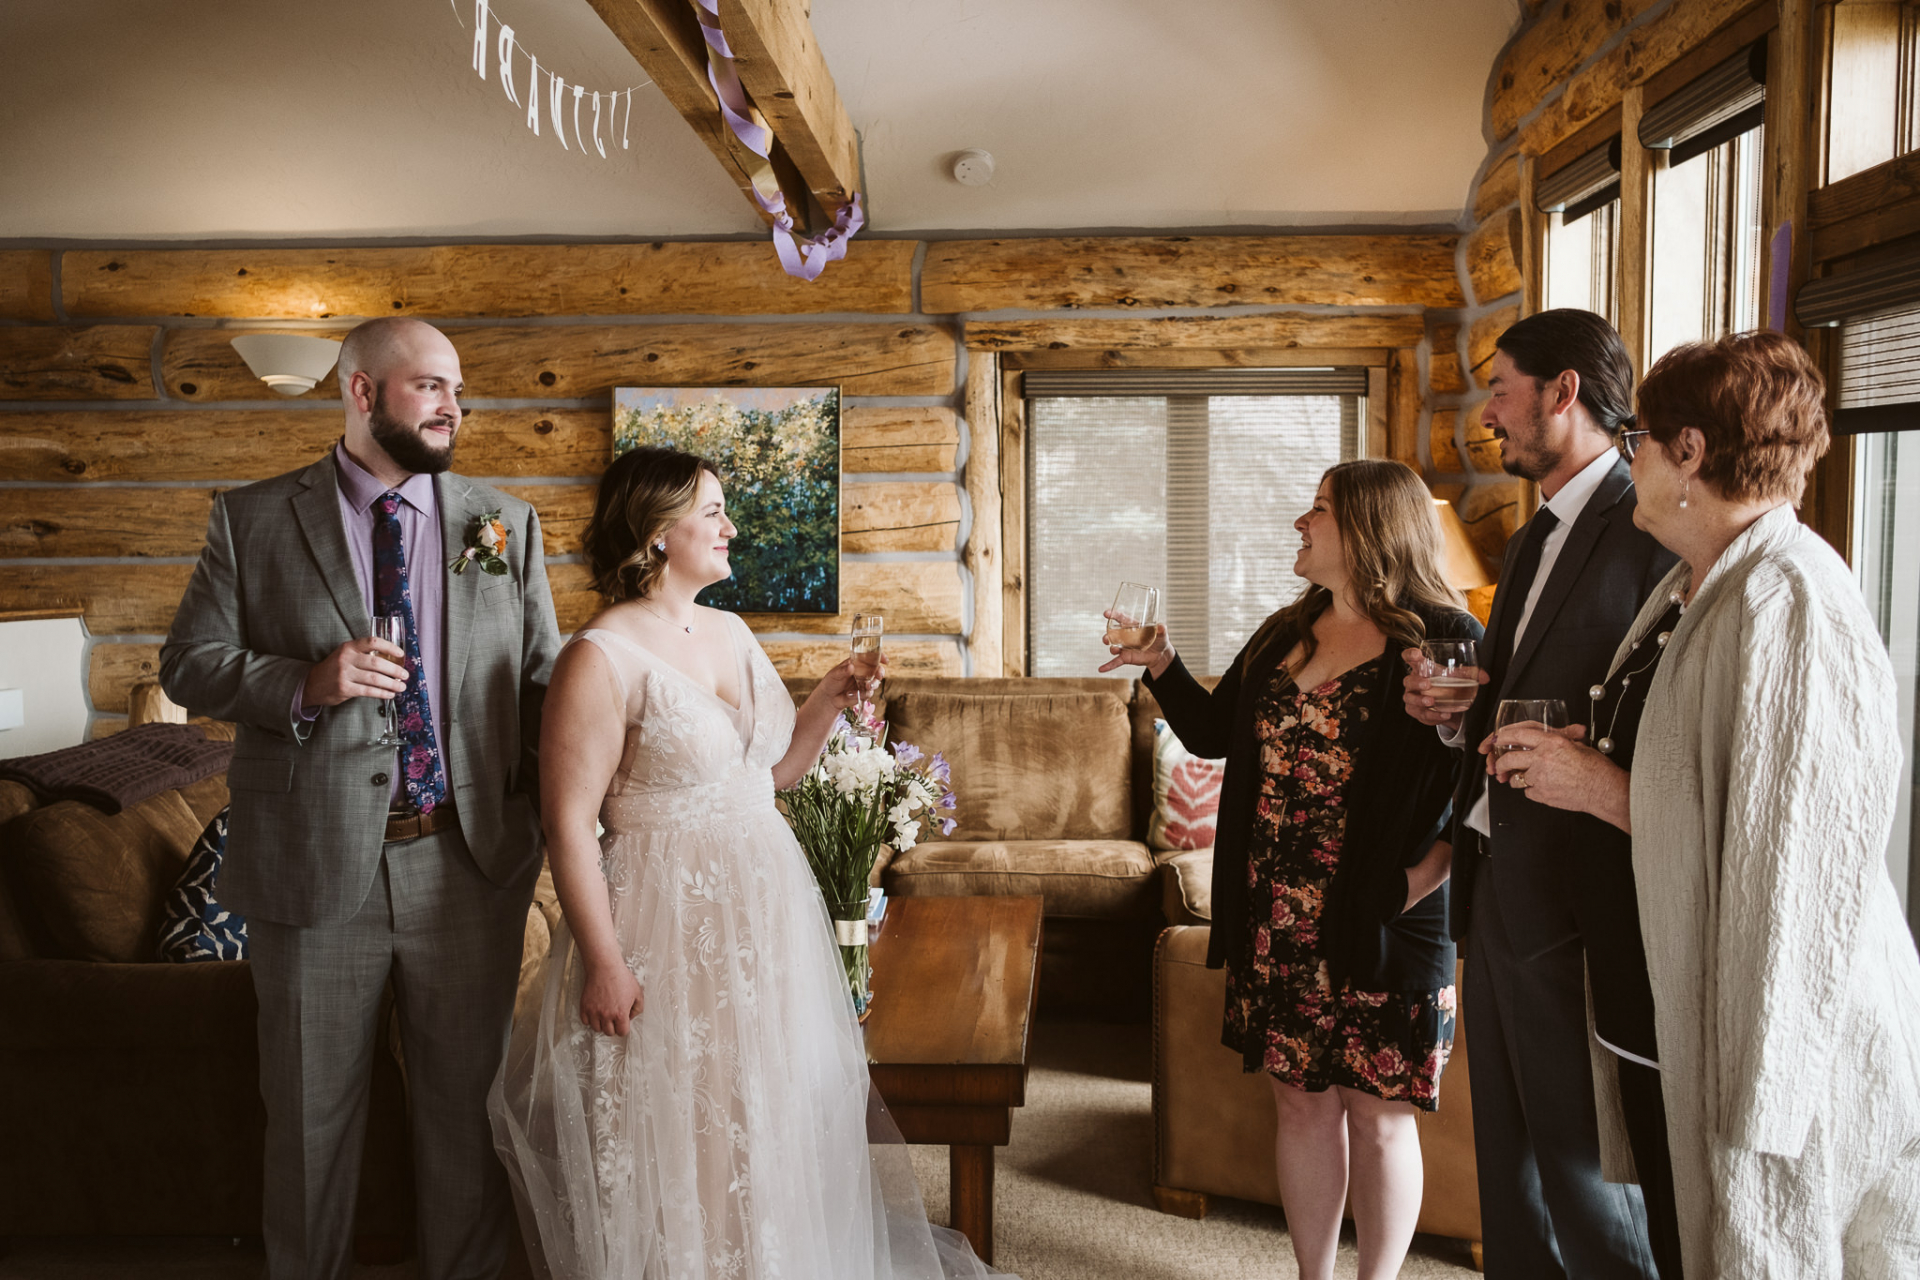 Crested Butte, Colorado Elopement Picture | Bride and groom's family gives toasts to the couple before heading outside into the snow for their ceremony